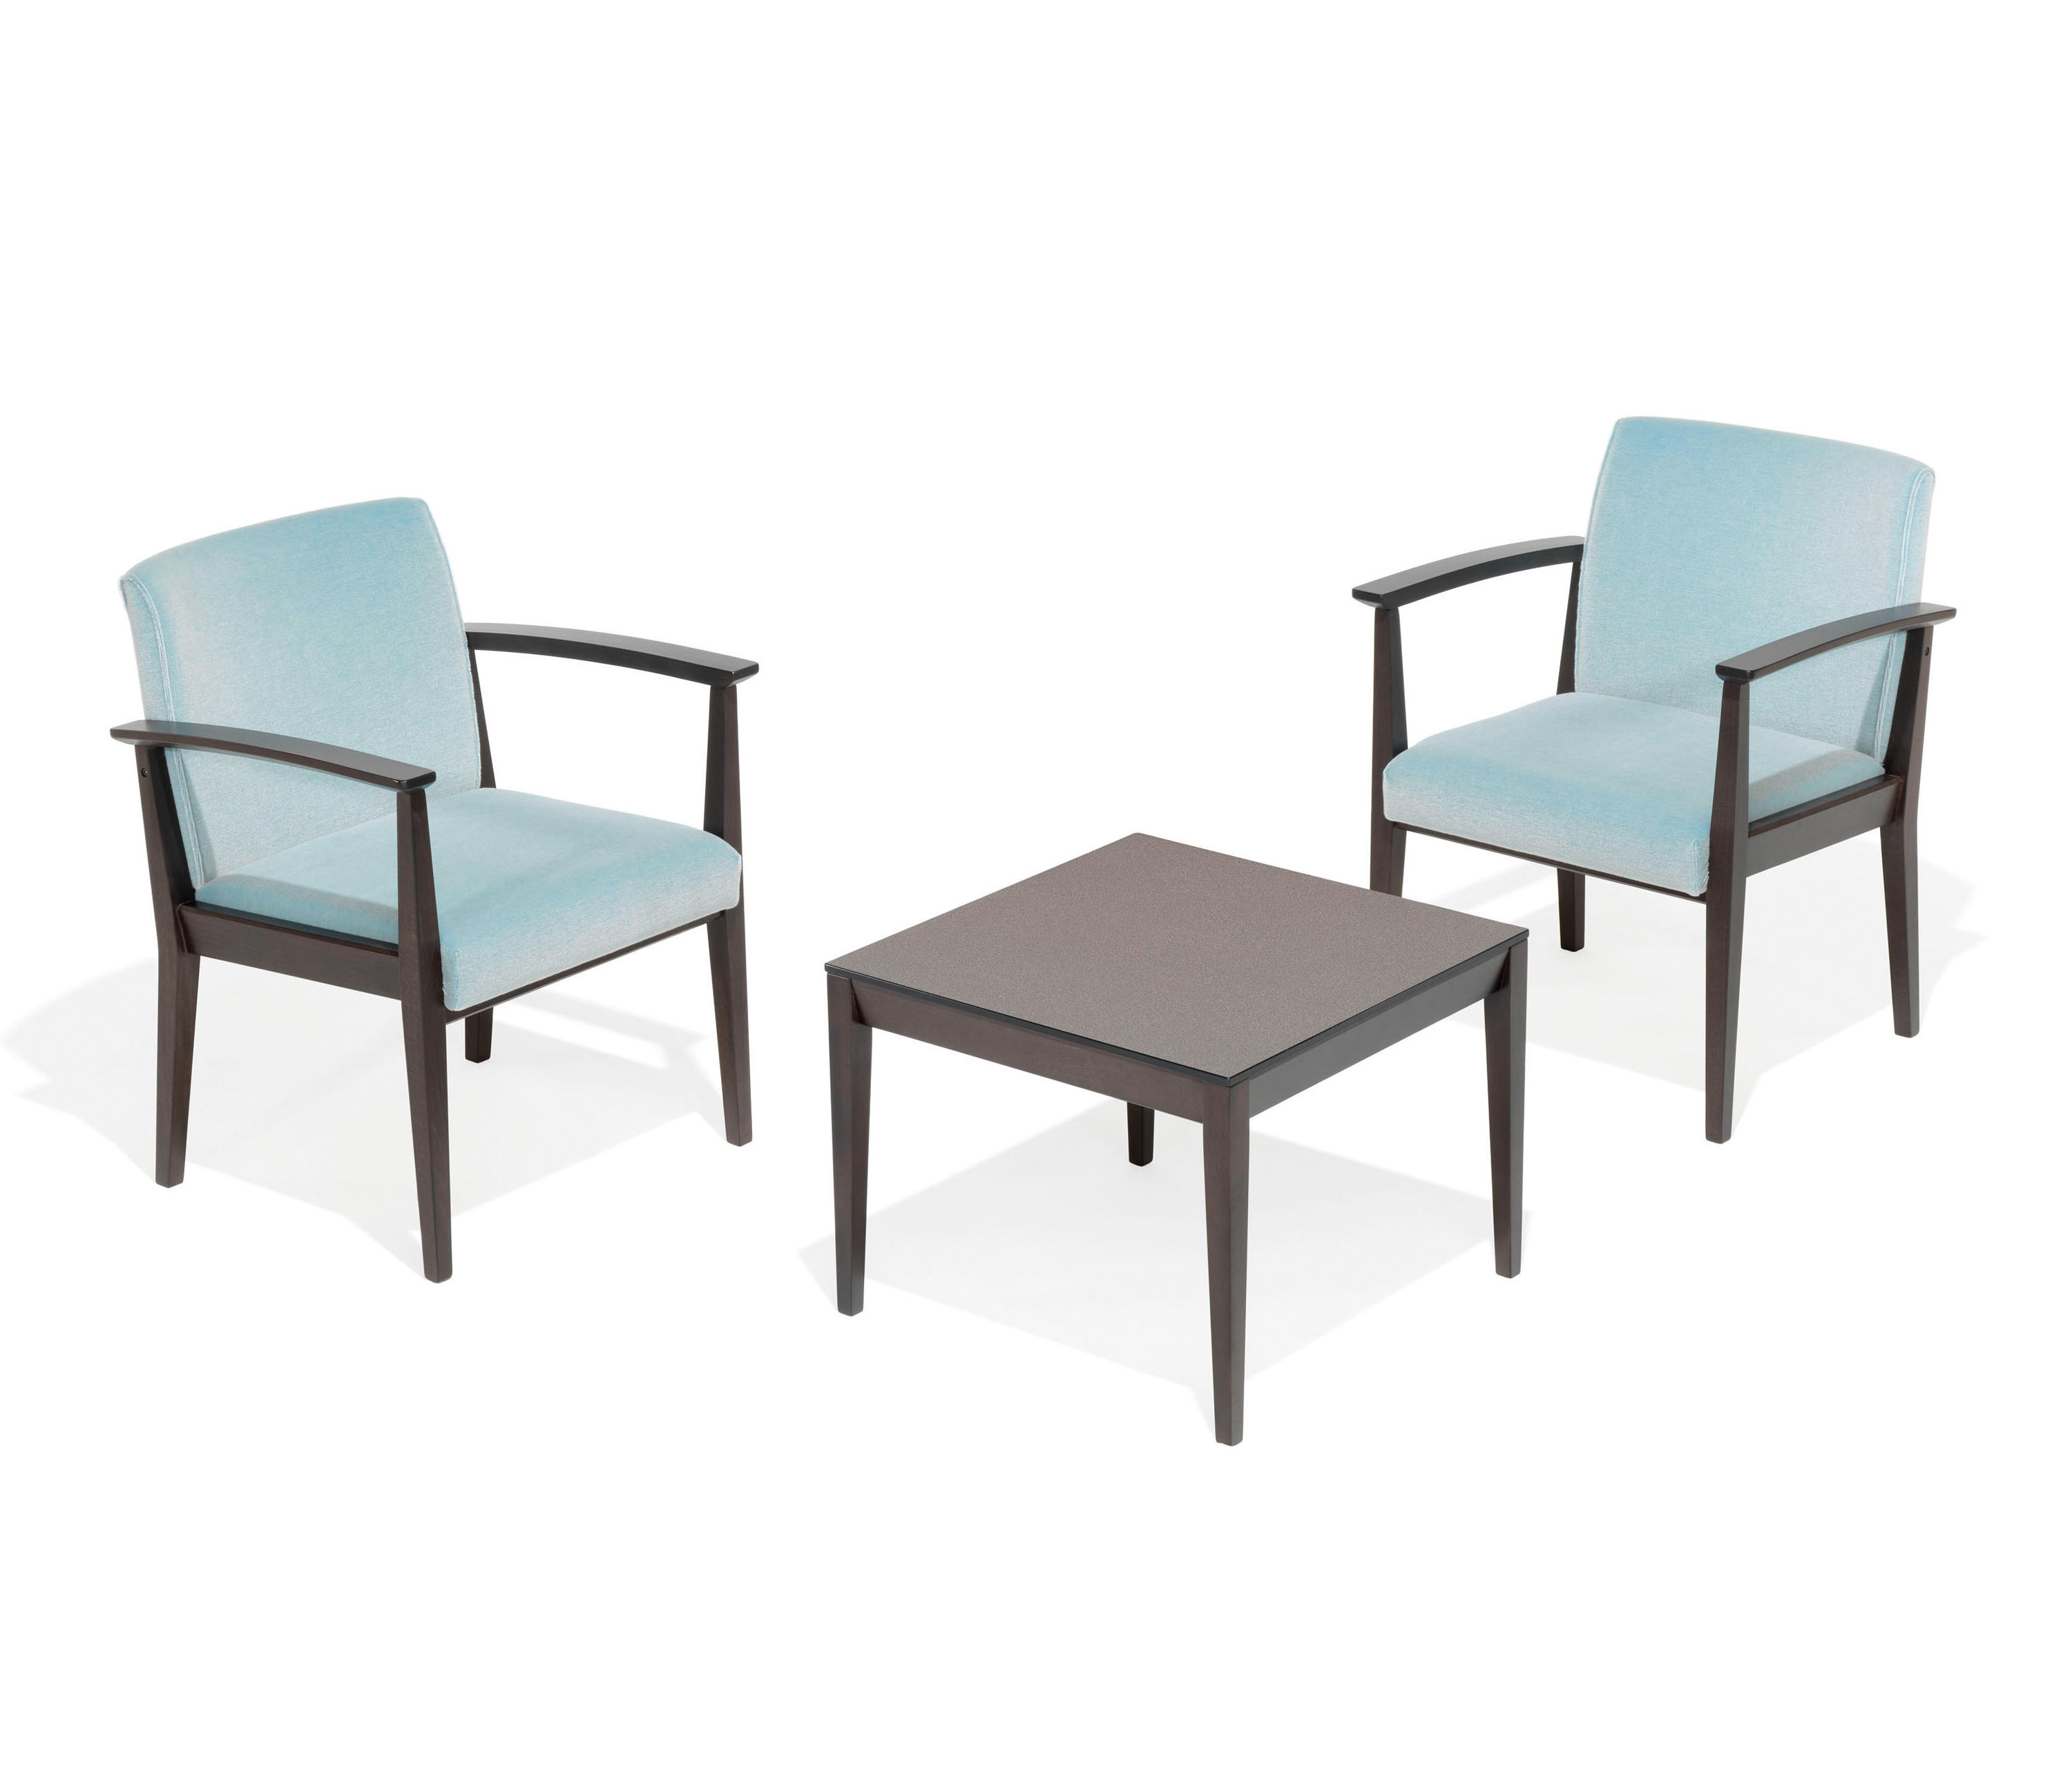 1532 2 luca chairs from kusch co architonic. Black Bedroom Furniture Sets. Home Design Ideas